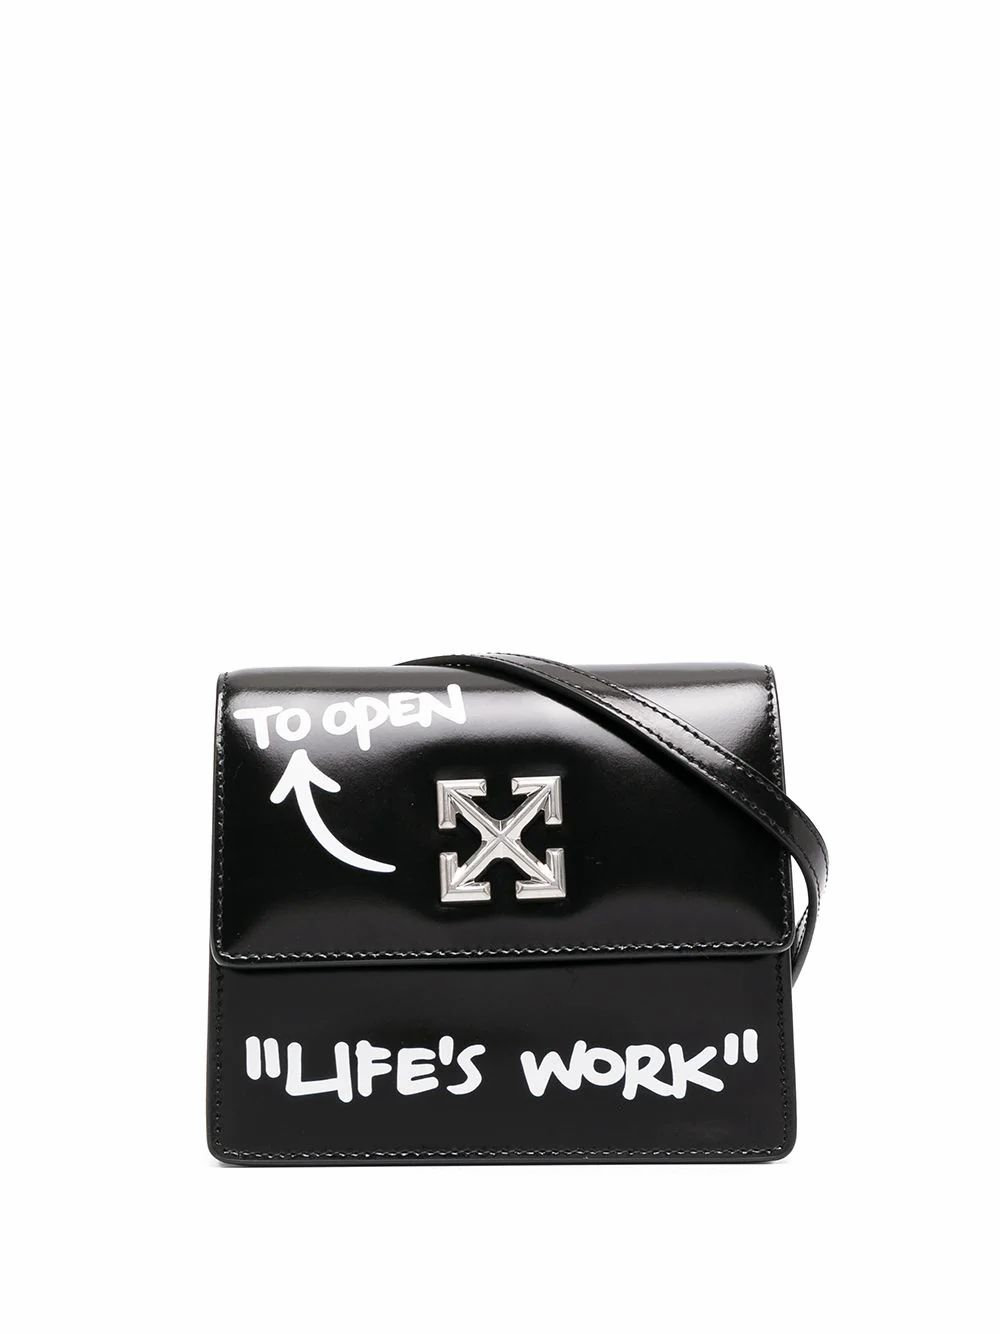 Off-White OFF-WHITE WOMEN'S BLACK LEATHER SHOULDER BAG